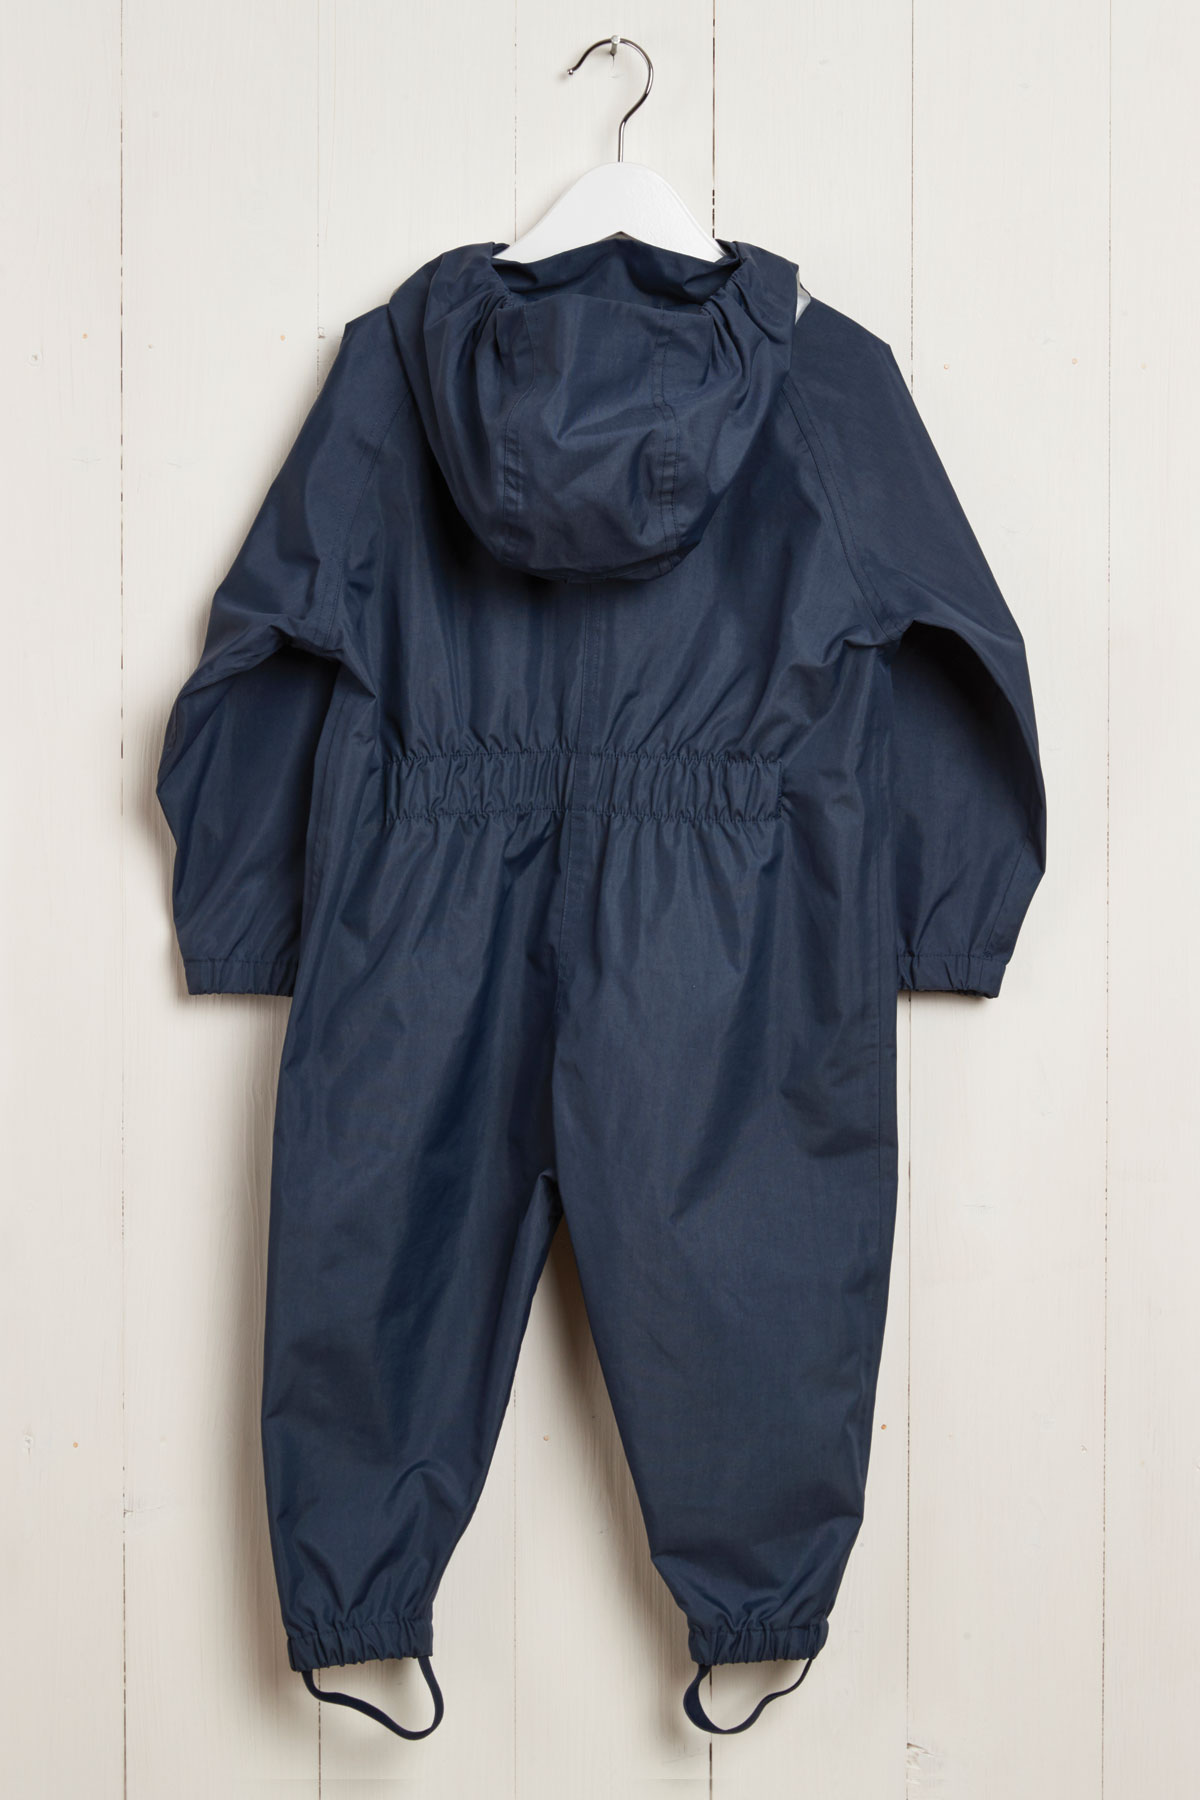 rear product view of navy kids puddle suit